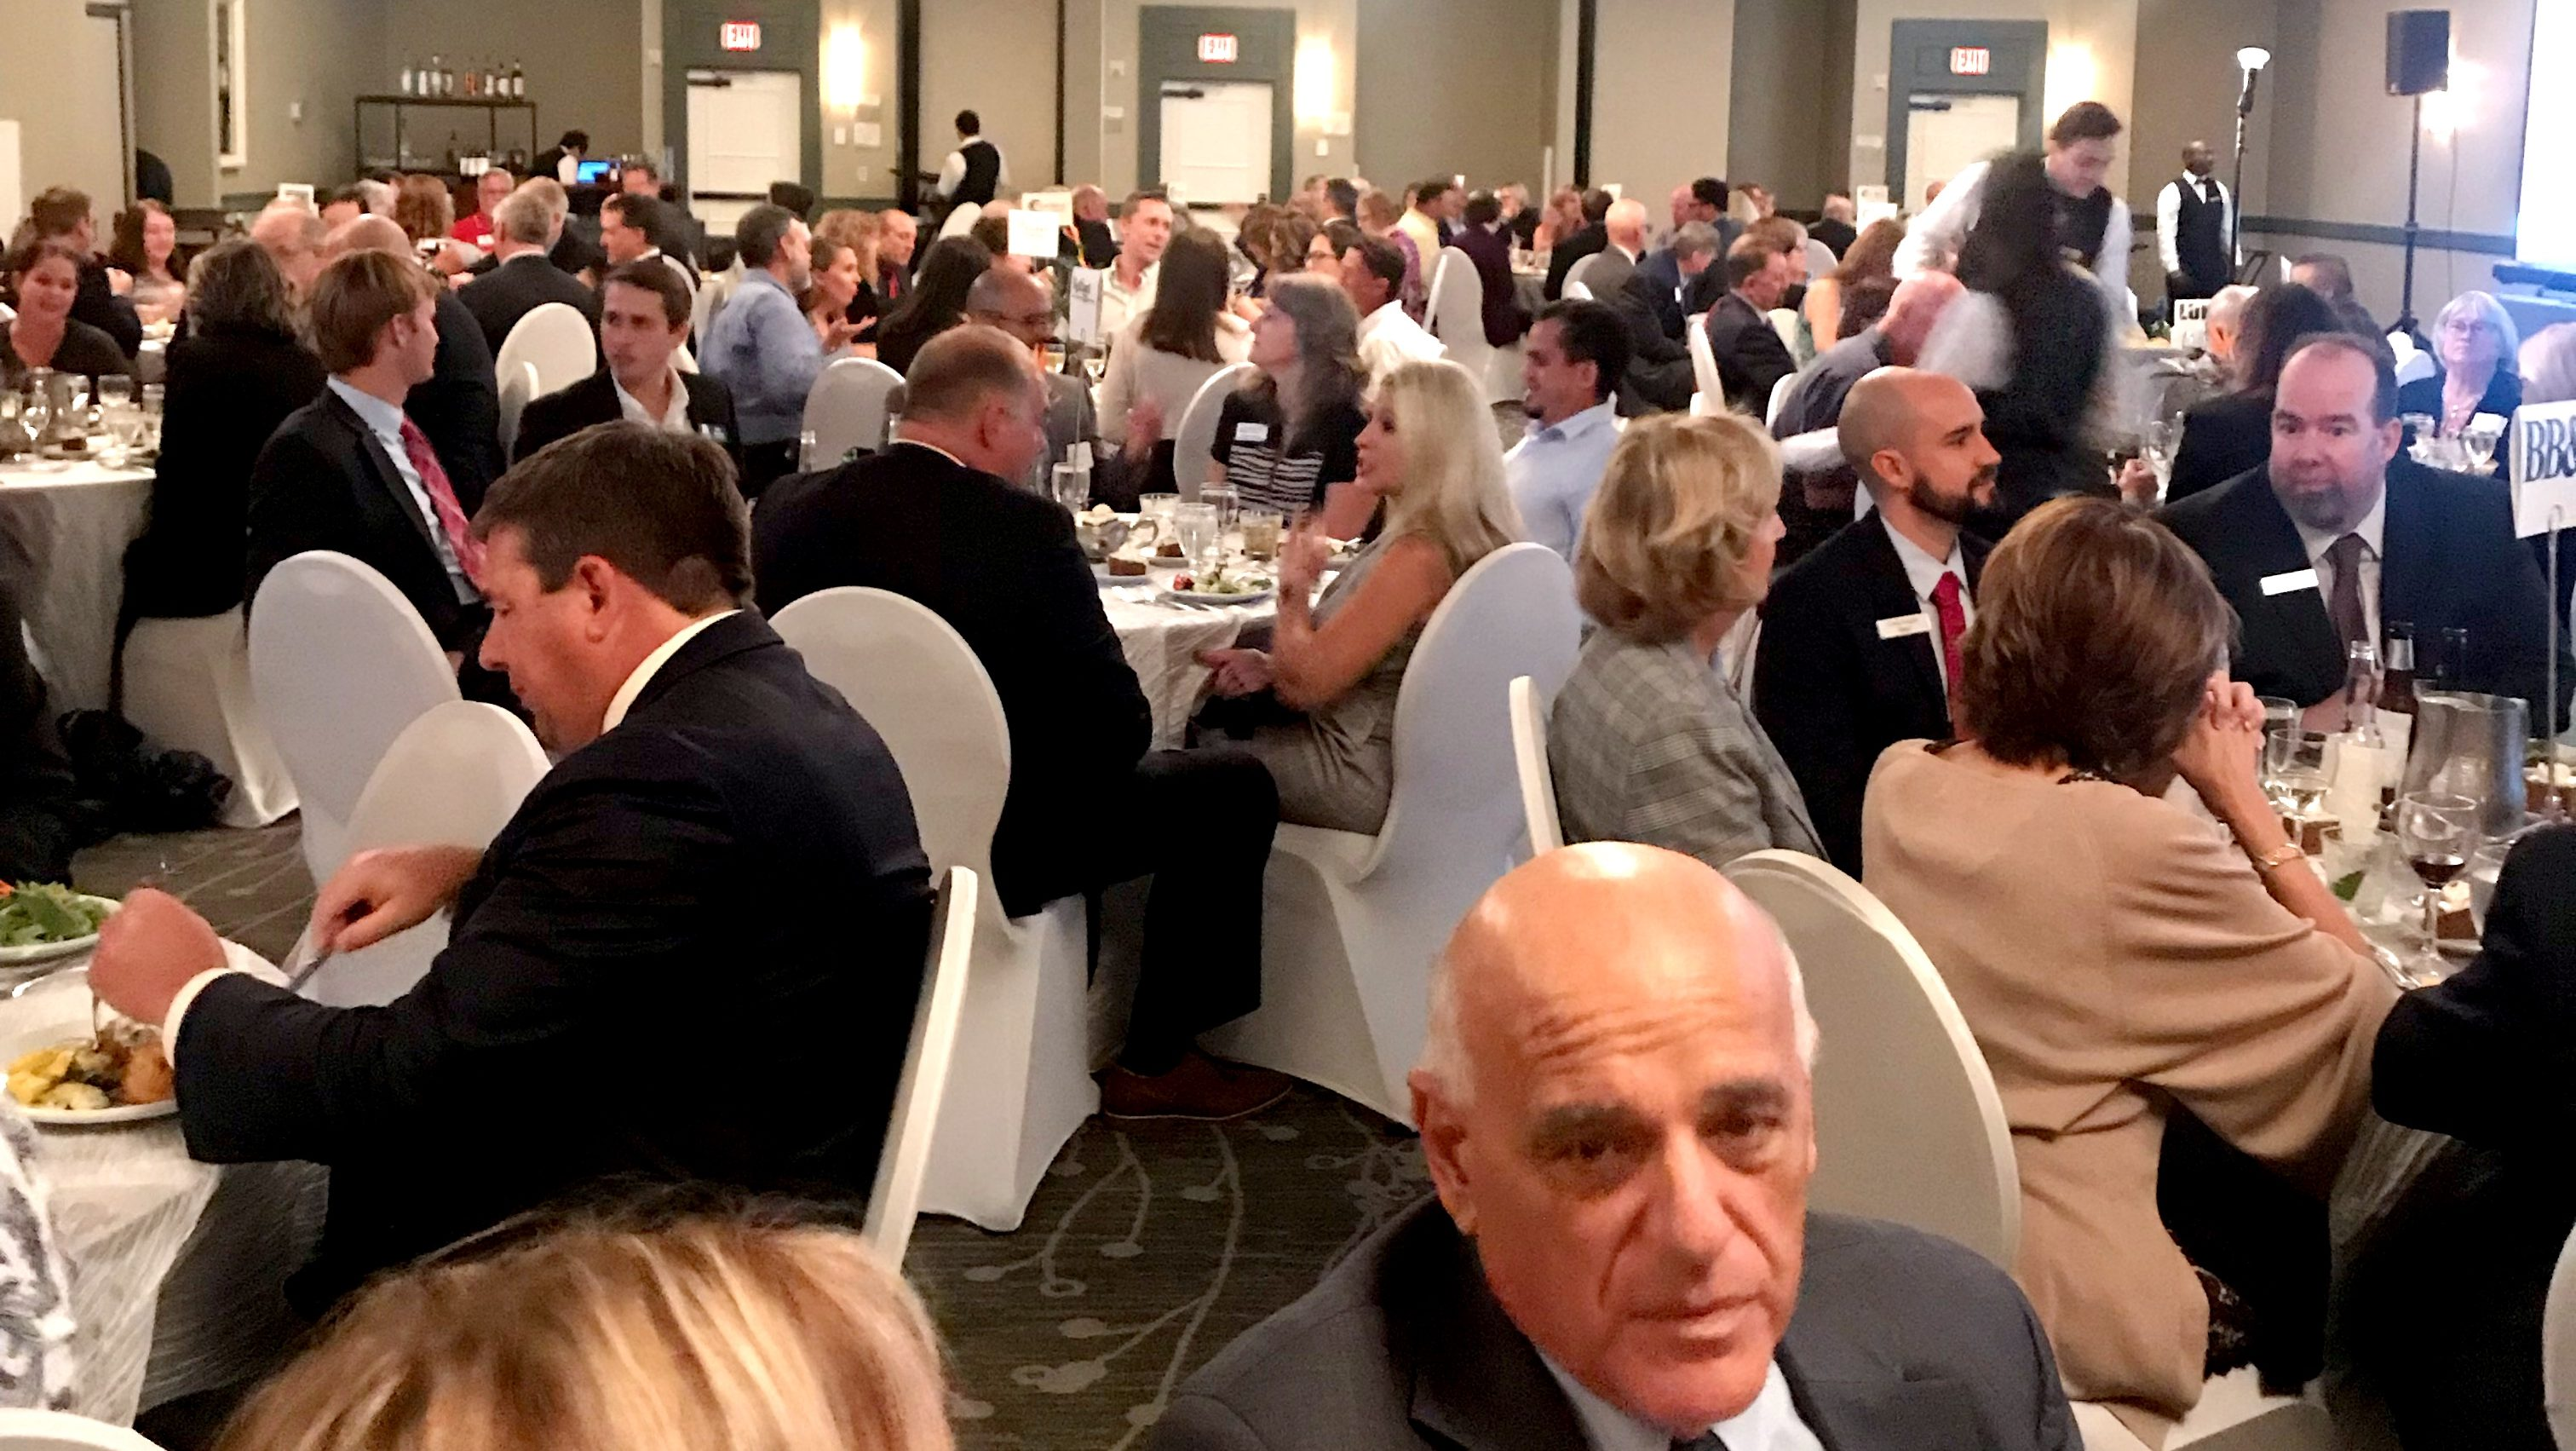 Founders Forum Founder of the Year Dinner in Melbourne Florida at Crown Plaza Melbourne Oceanfront